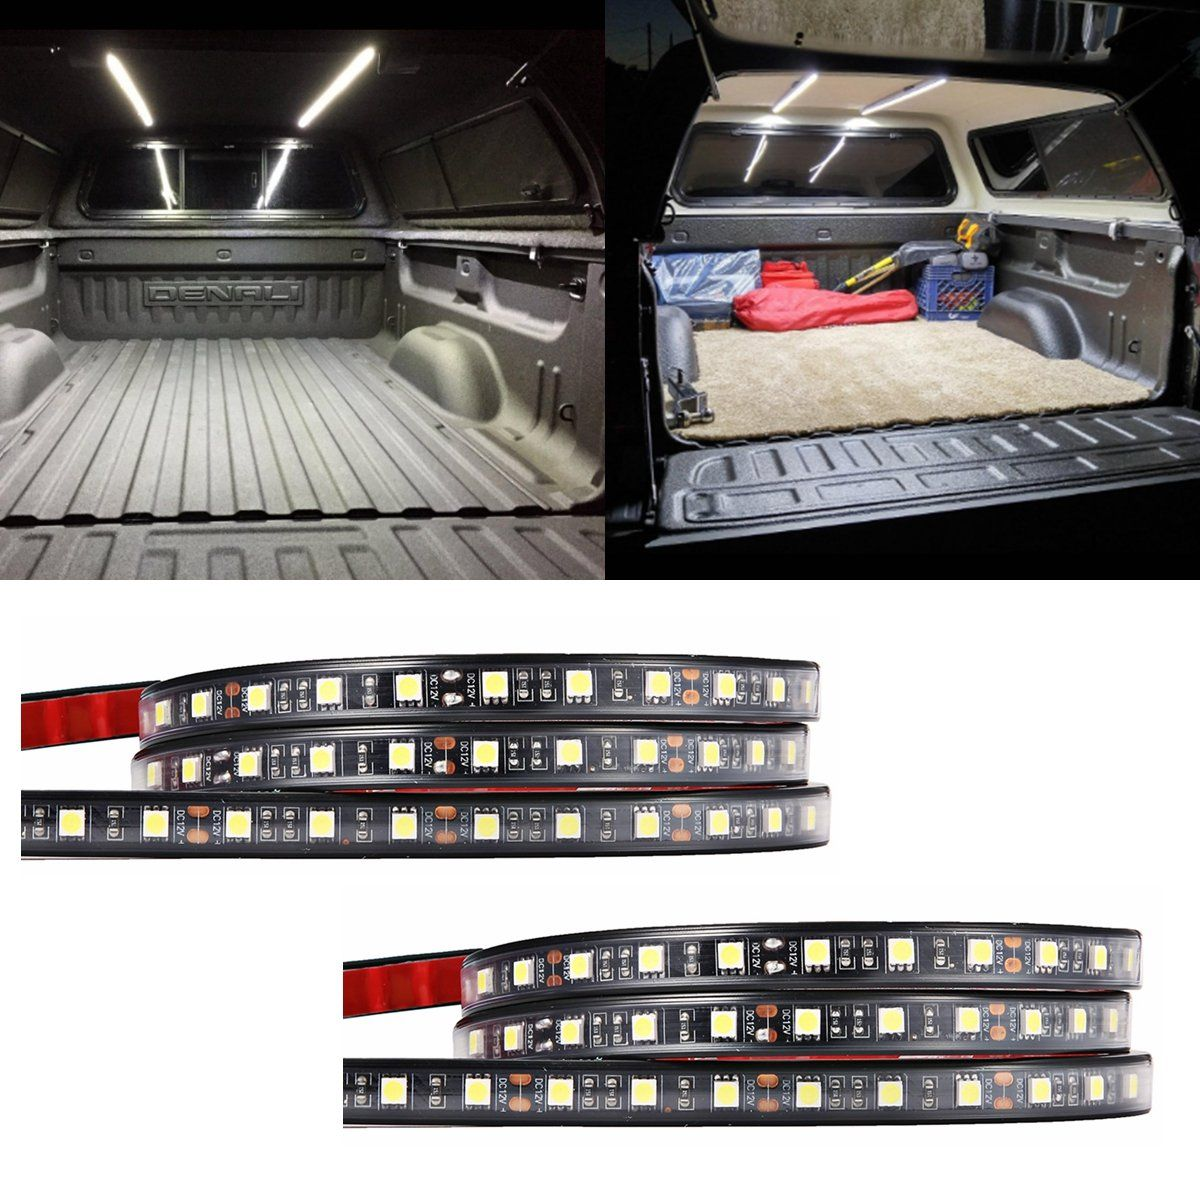 Audew 2pcs 60 Truck Bed Light Strips Unloading Cargo With 2 Way Switch For Car Waterproof On Off Fuse Plug N Play Splitter Lighting System Pickup